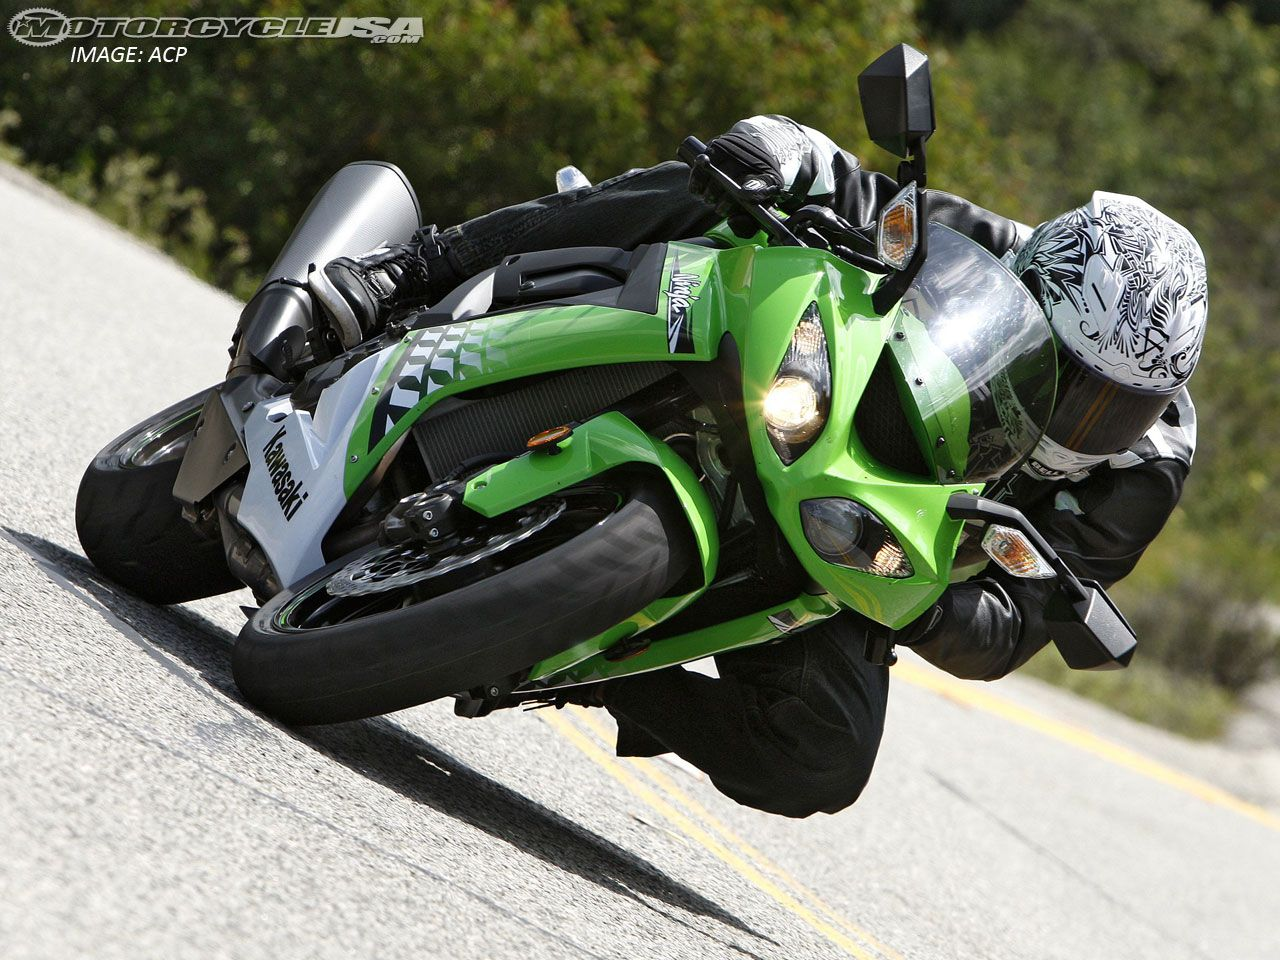 2010 Kawasaki ZX-10R Comparison Street on Countersteer